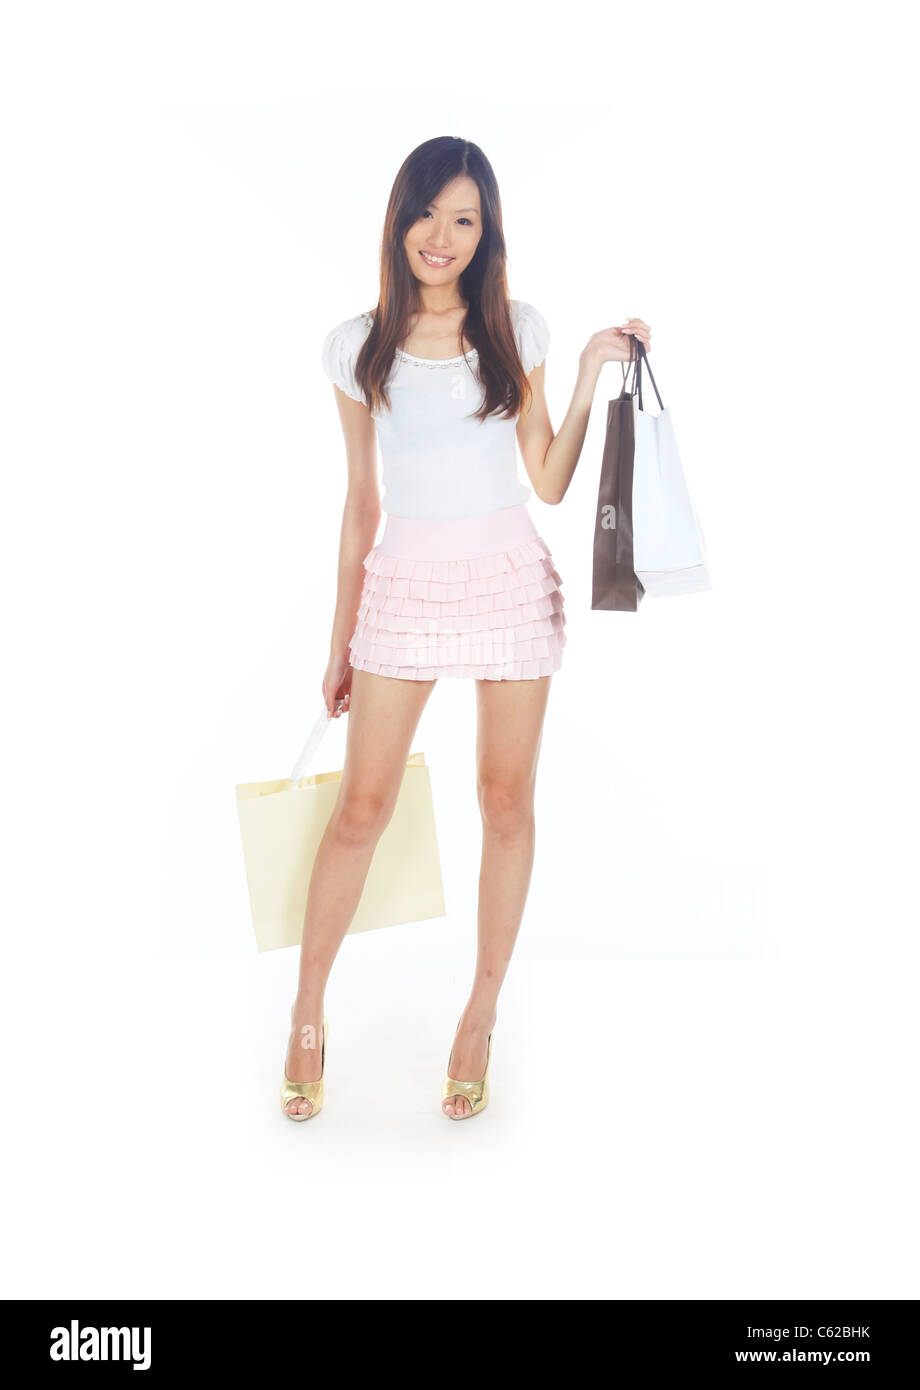 Retail Therapy Concept with Asian Lady and Bags - Stock Image